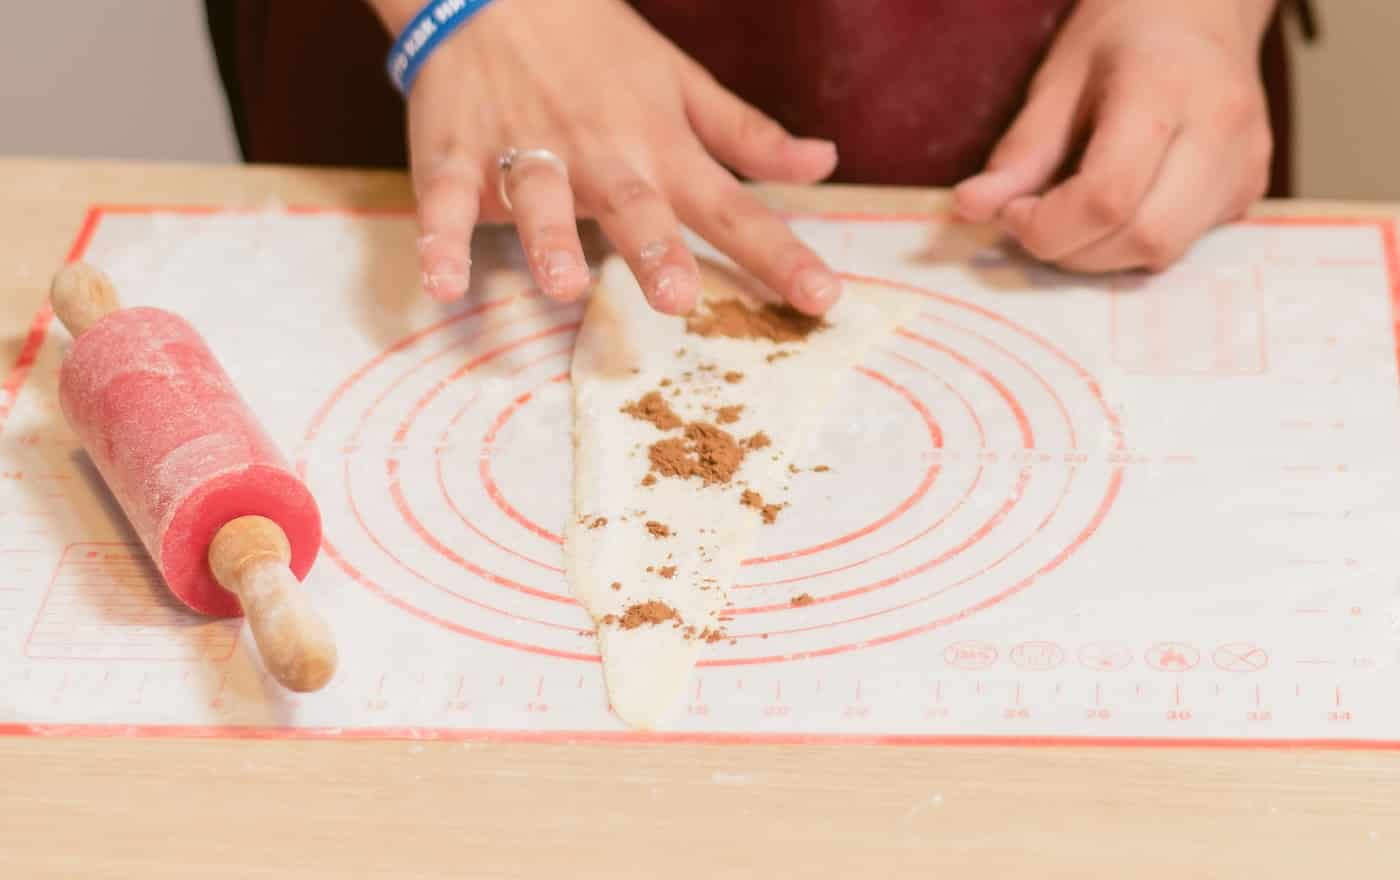 dough mat. Cooking Croissants with Cocoa